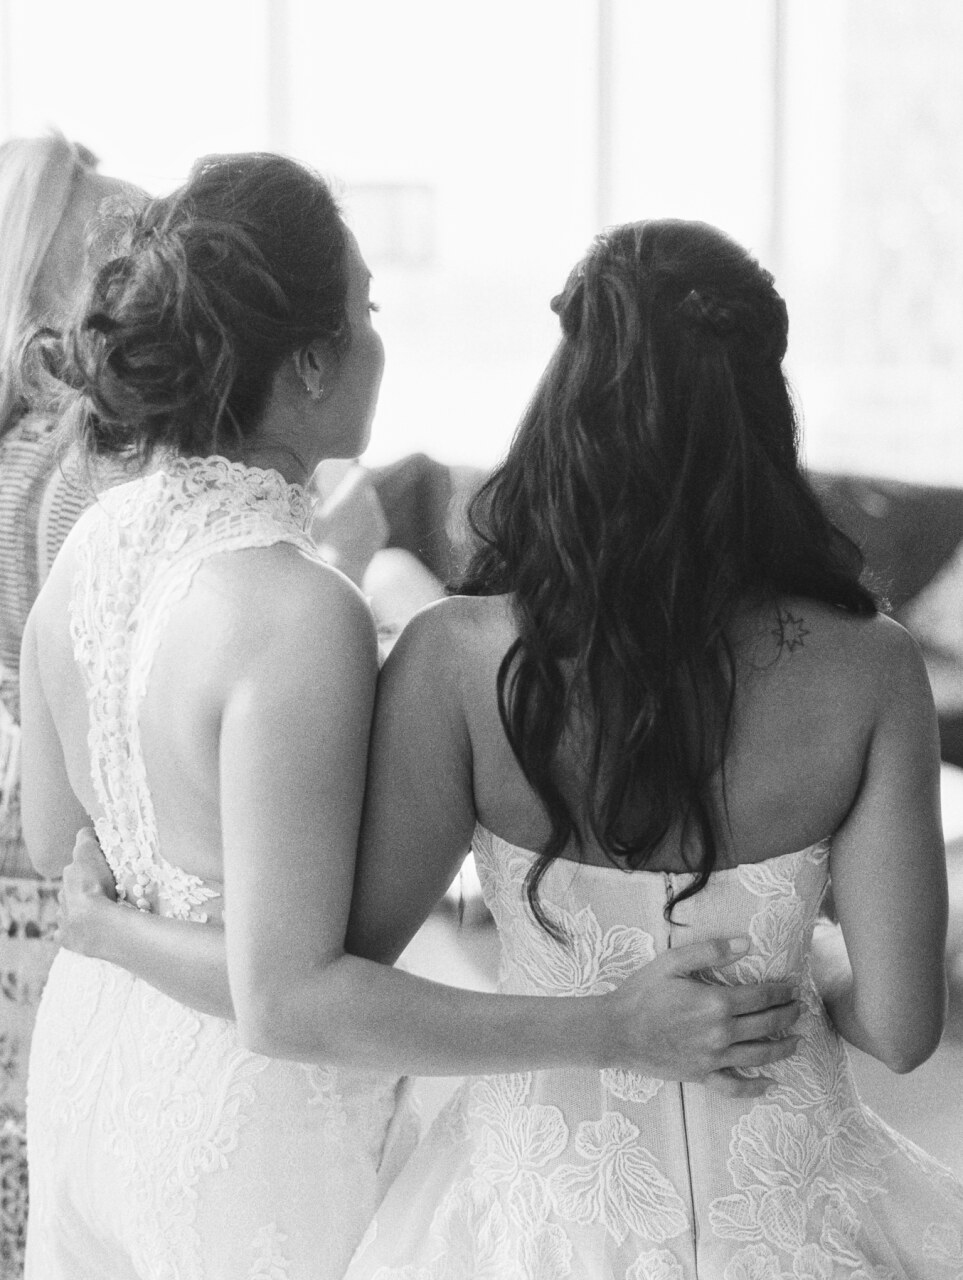 backside of brides with arms around one another